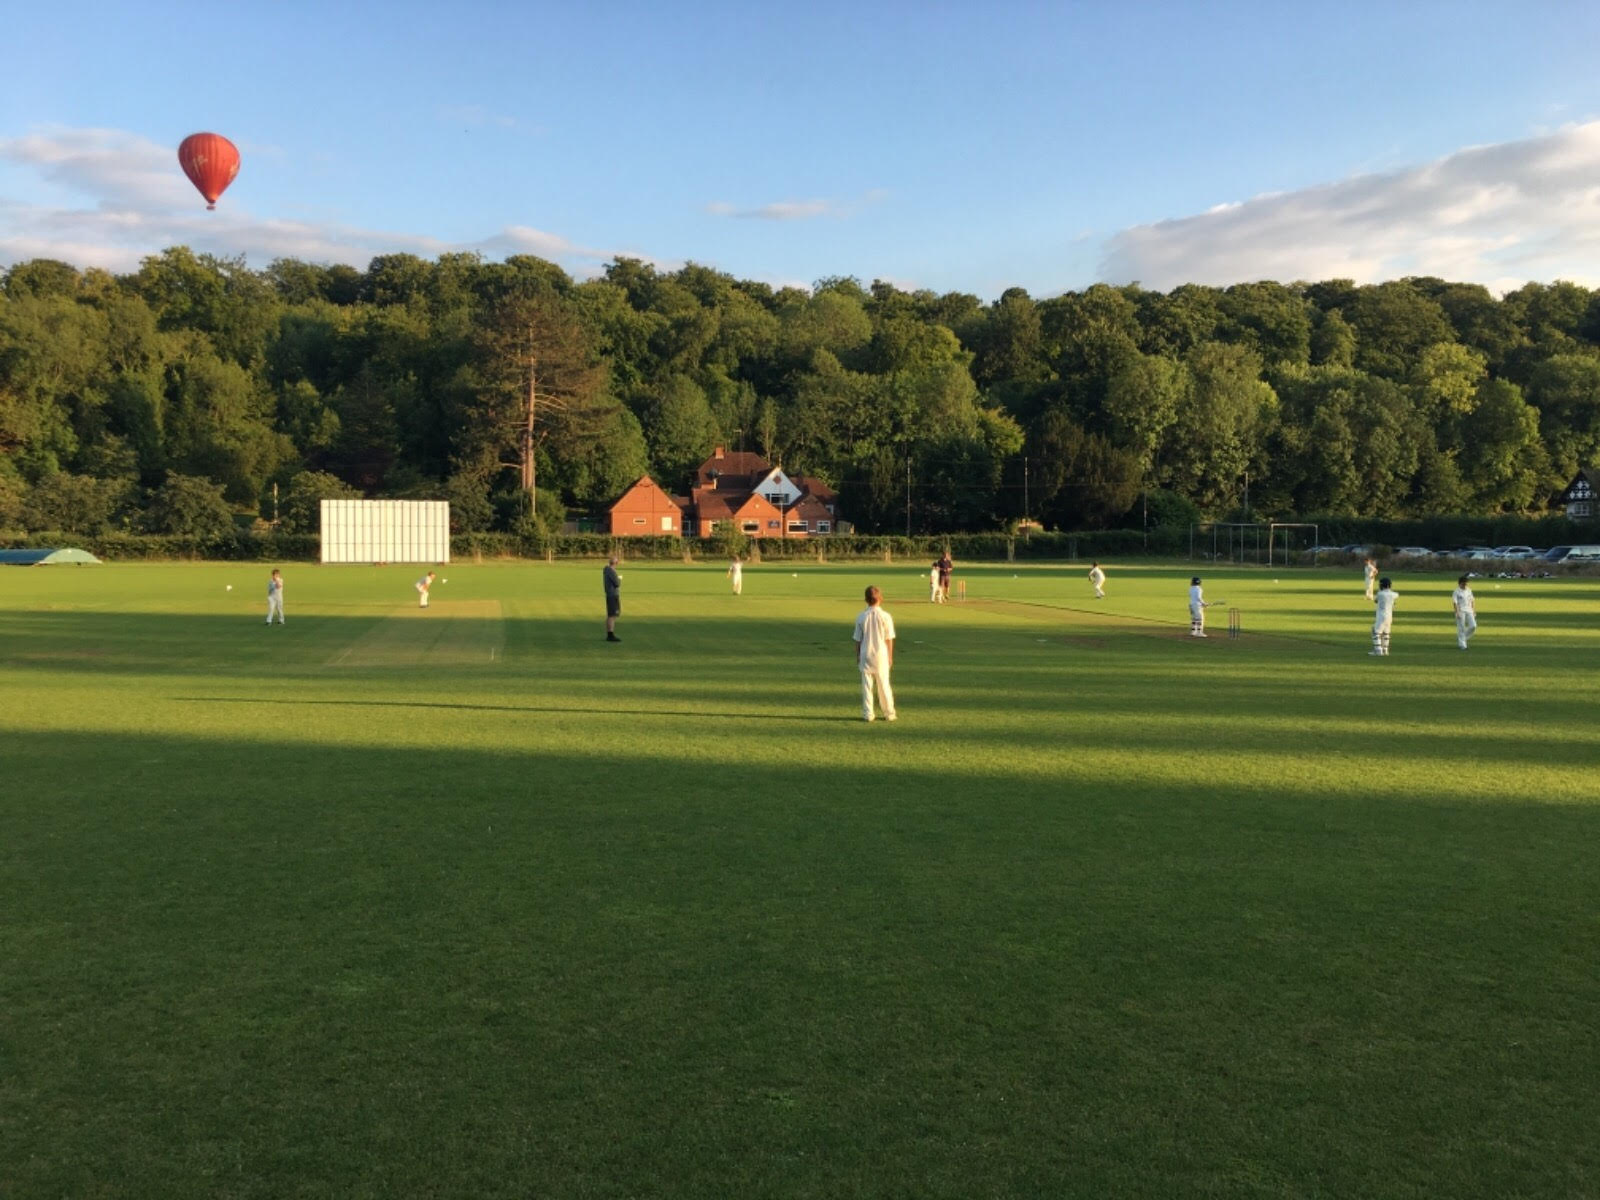 Junior Cricket is Back!